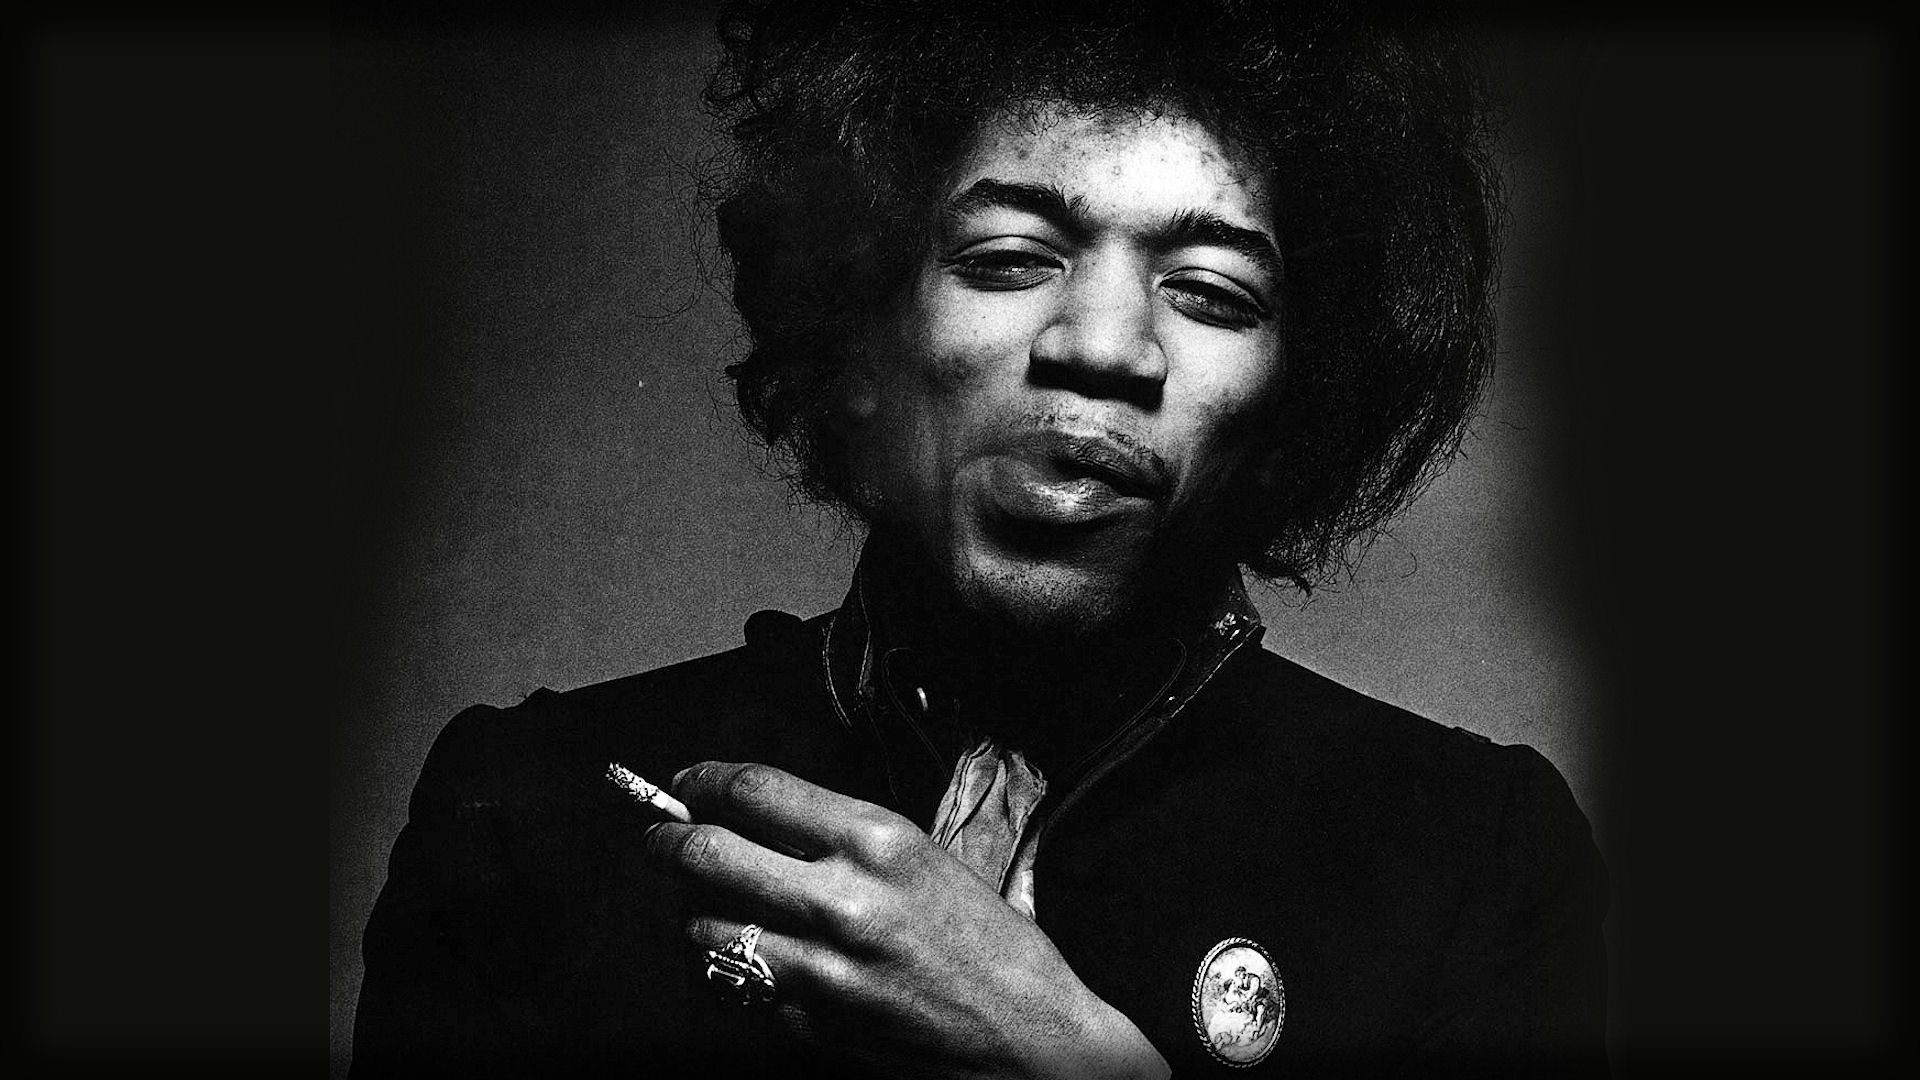 Full hd 1080p jimi hendrix wallpapers hd desktop backgrounds best full hd 1080p jimi hendrix wallpapers hd desktop backgrounds altavistaventures Images